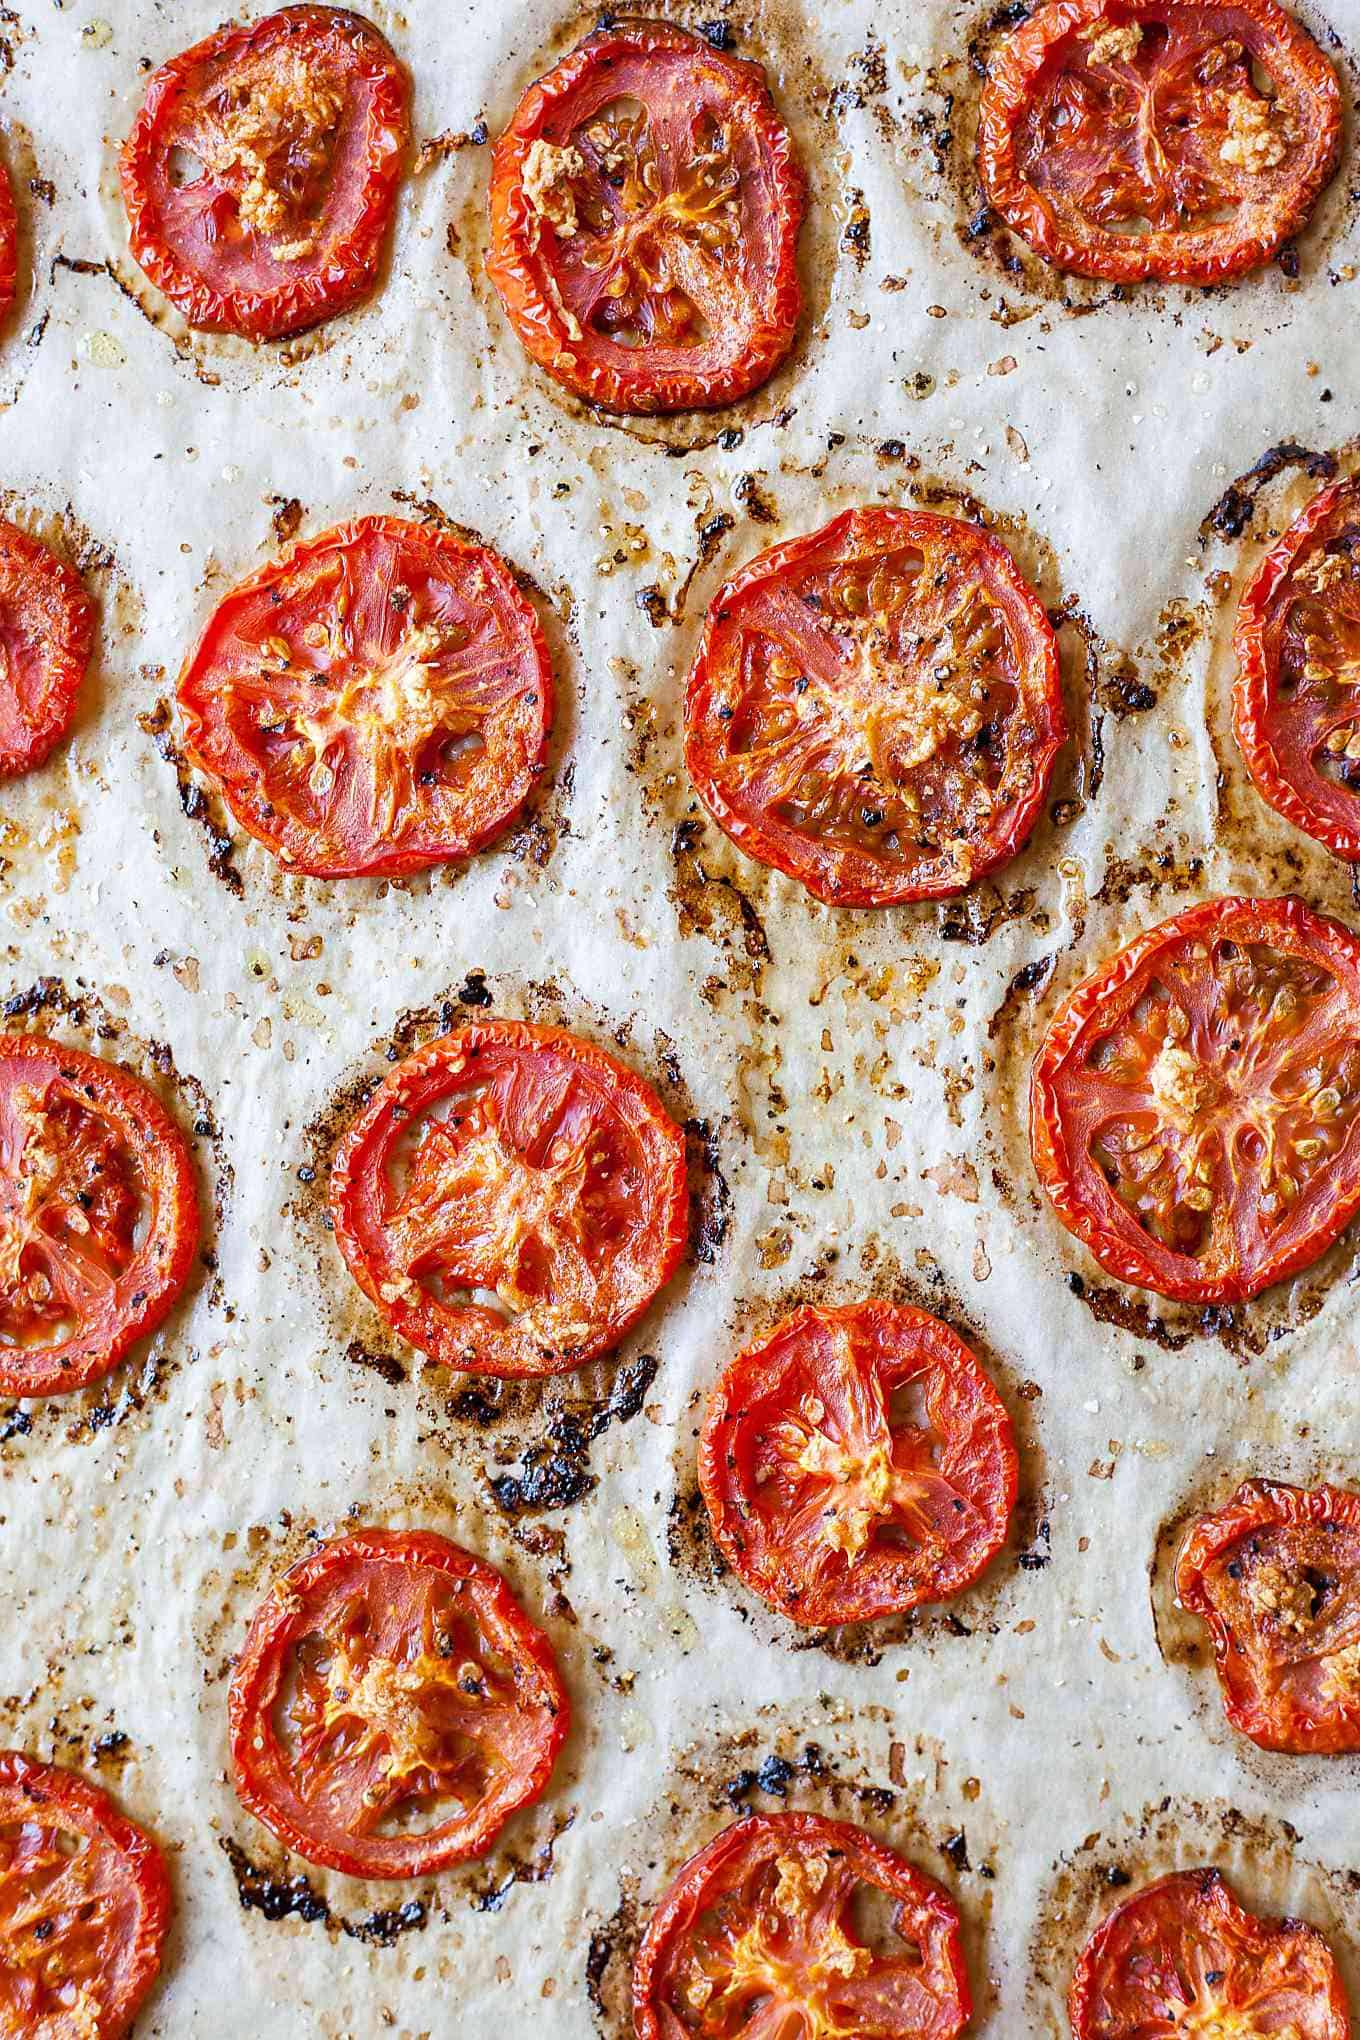 oven roasted tomatoes on a baking sheet lined with parchment paper